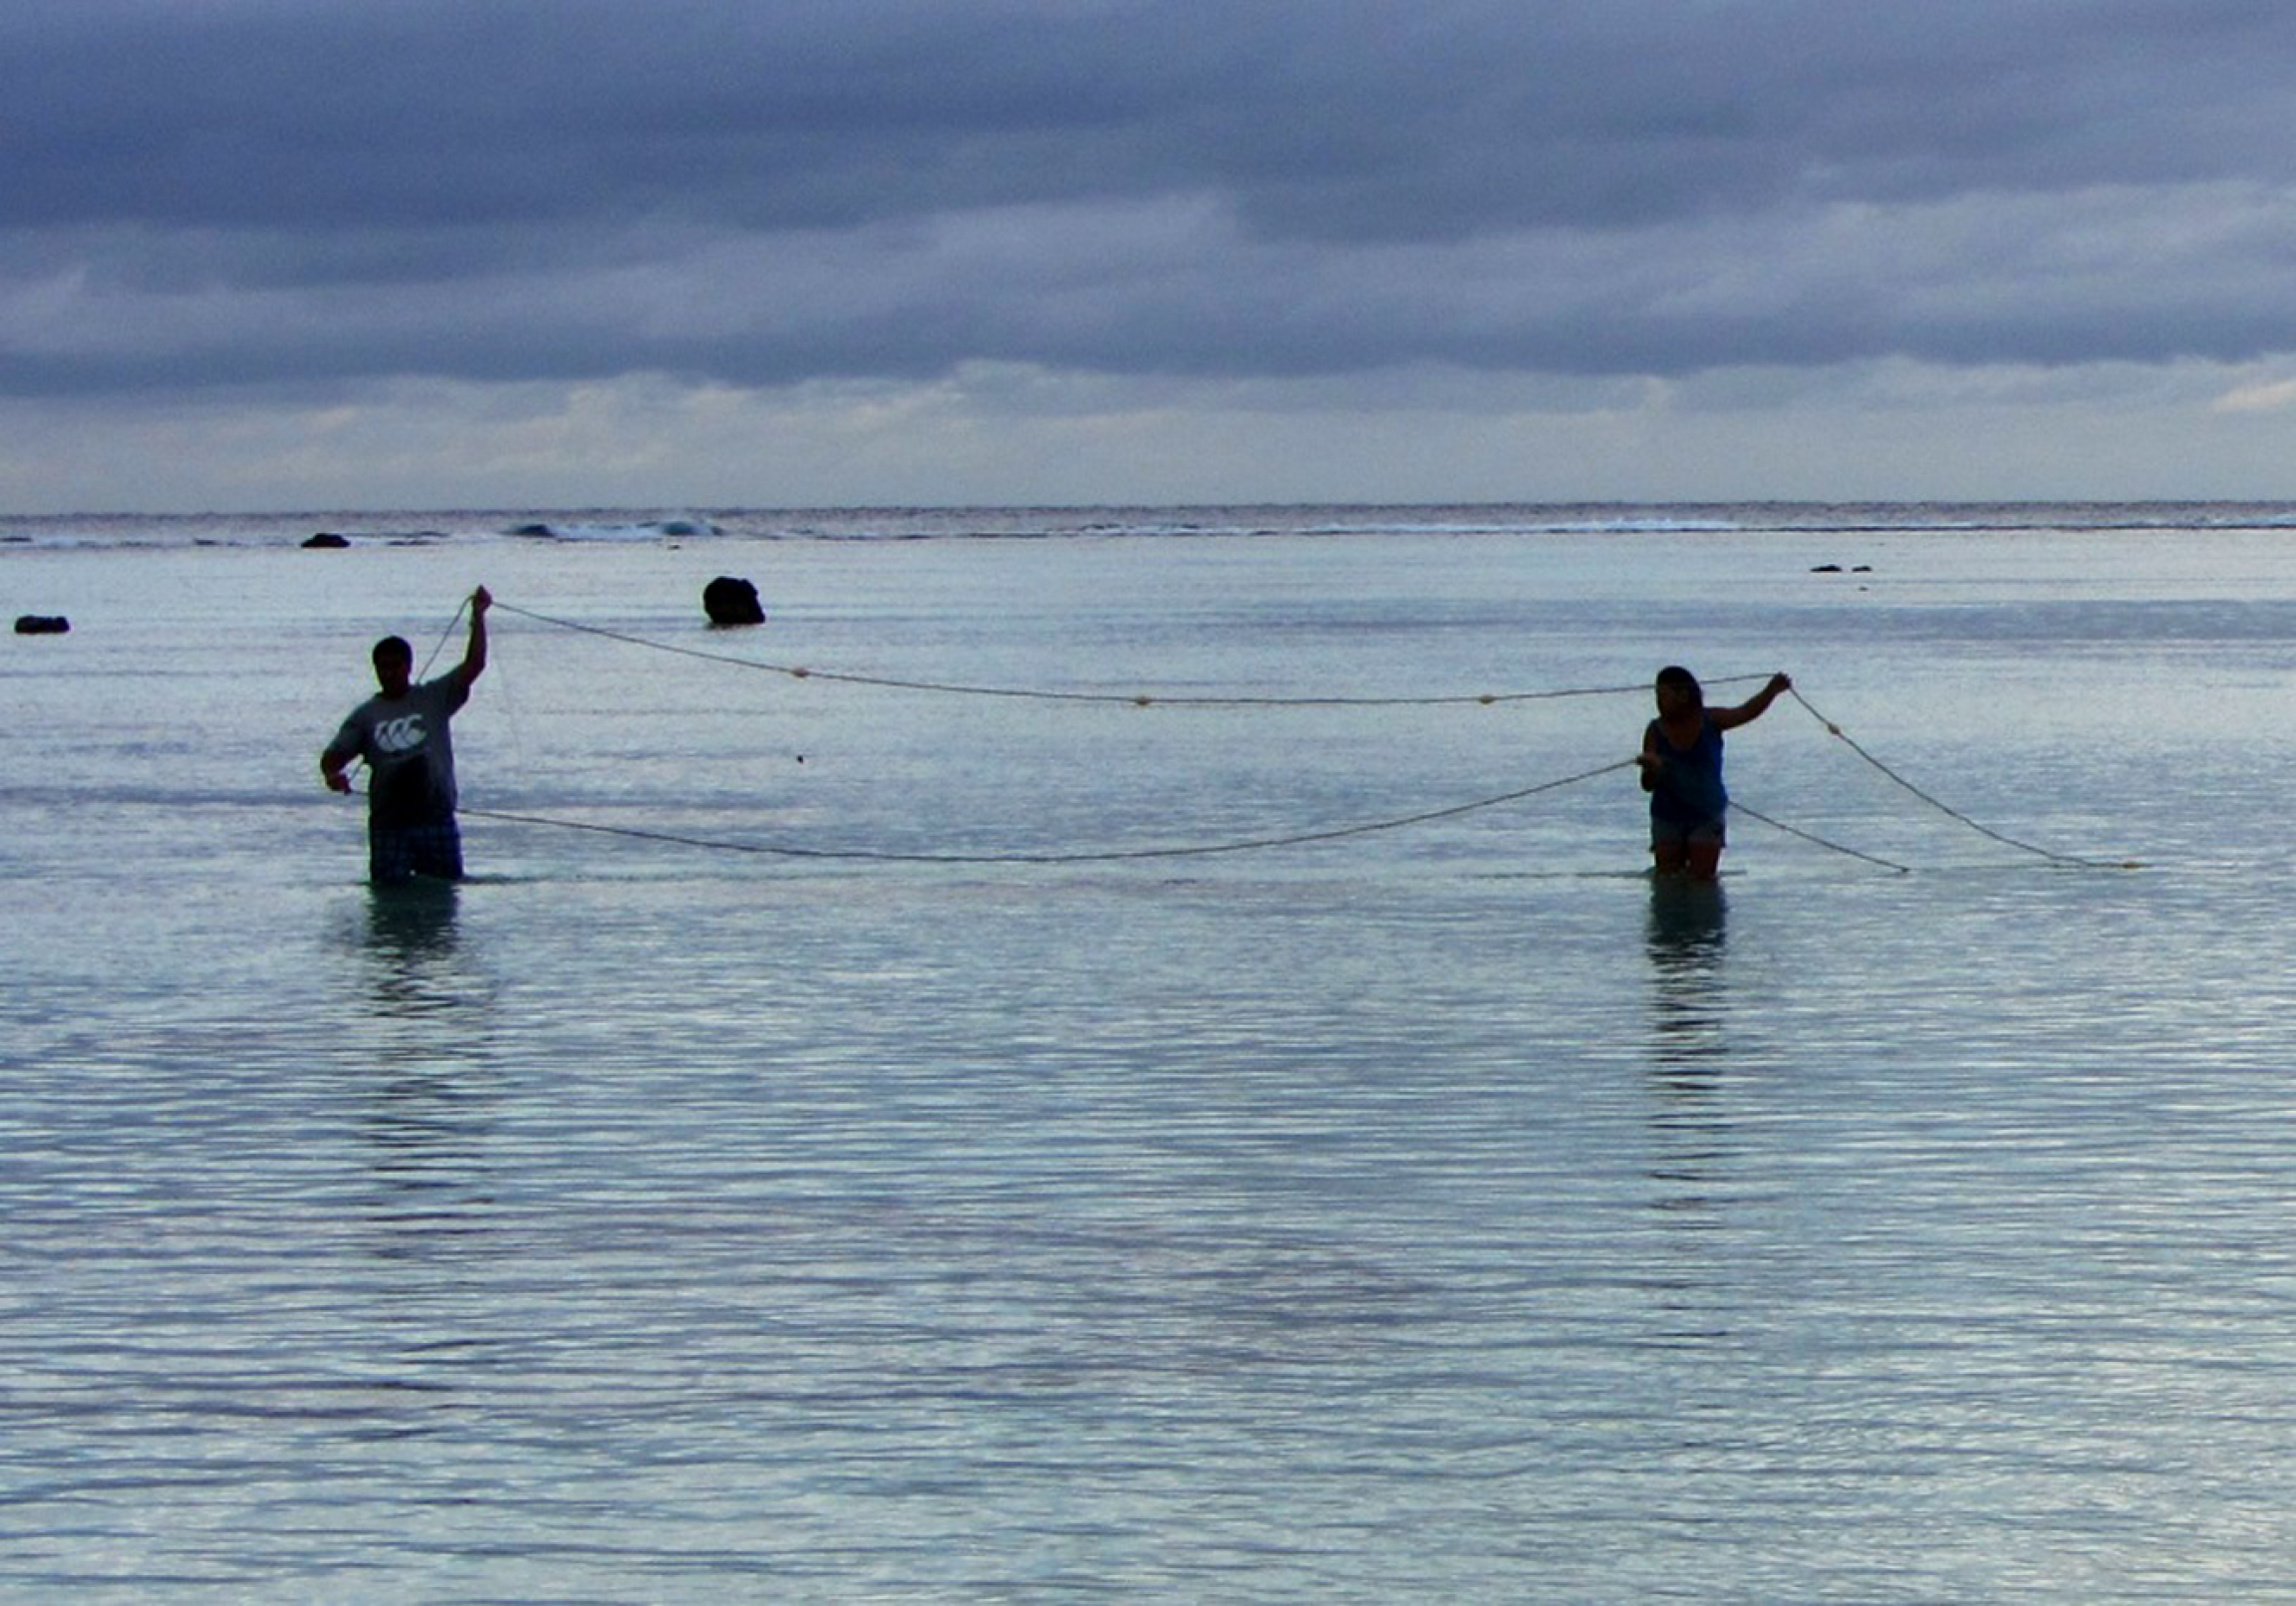 Two men in water net-fishing at dusk.